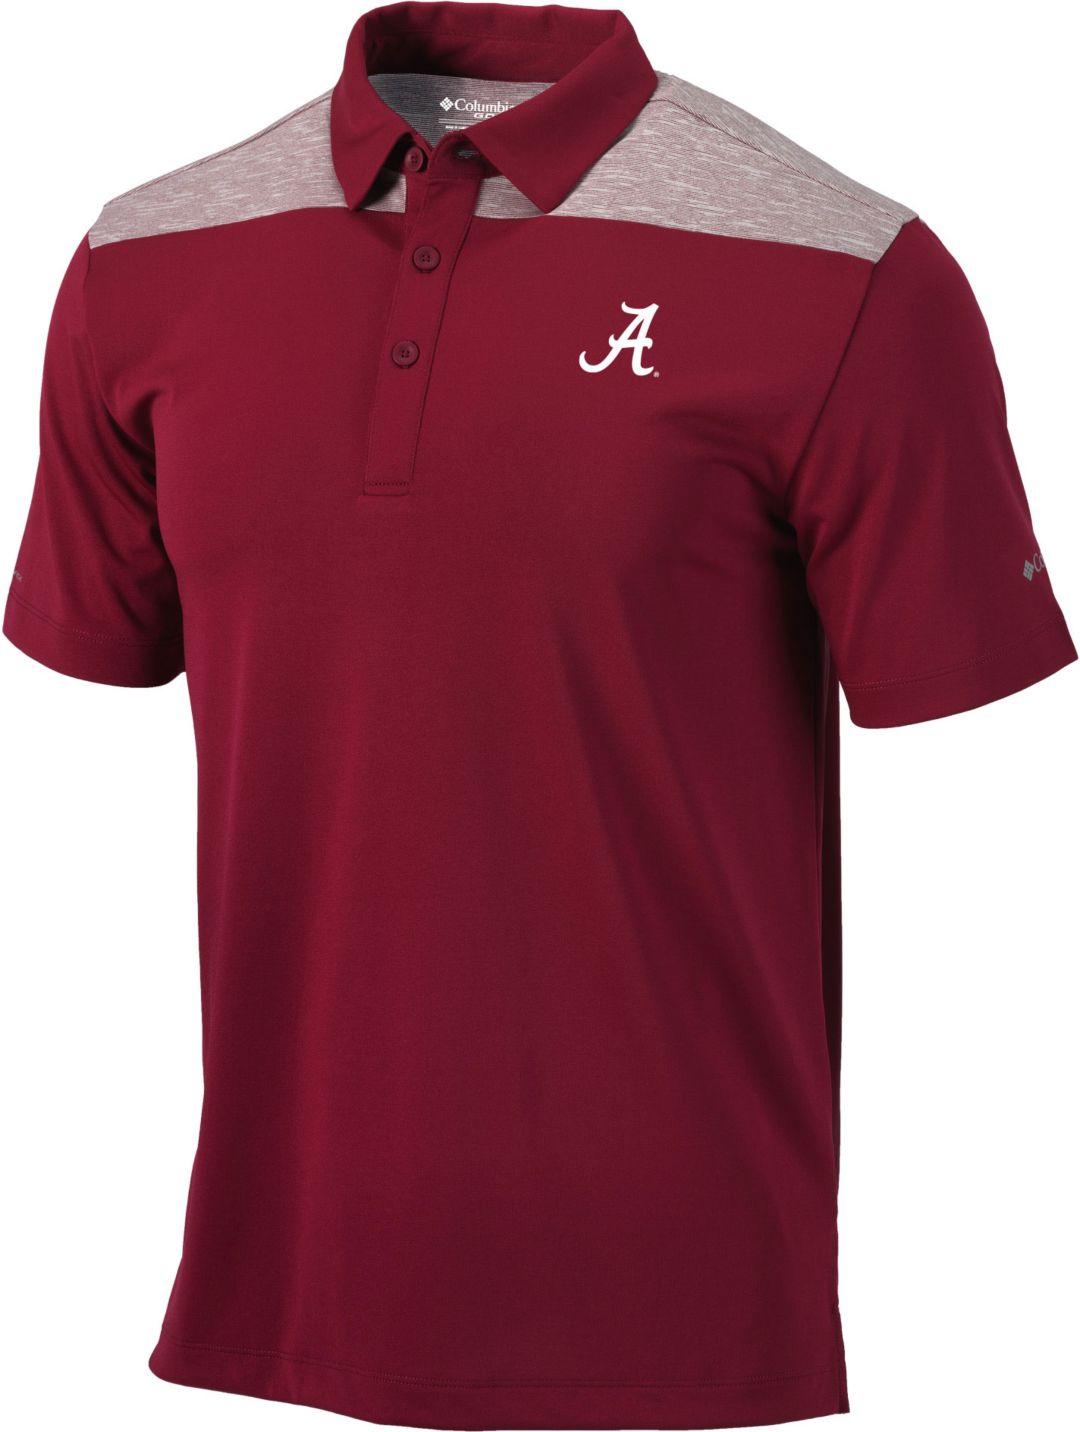 00ac195cf Columbia Men's Alabama Crimson Tide Crimson Utility Performance Polo.  noImageFound. Previous